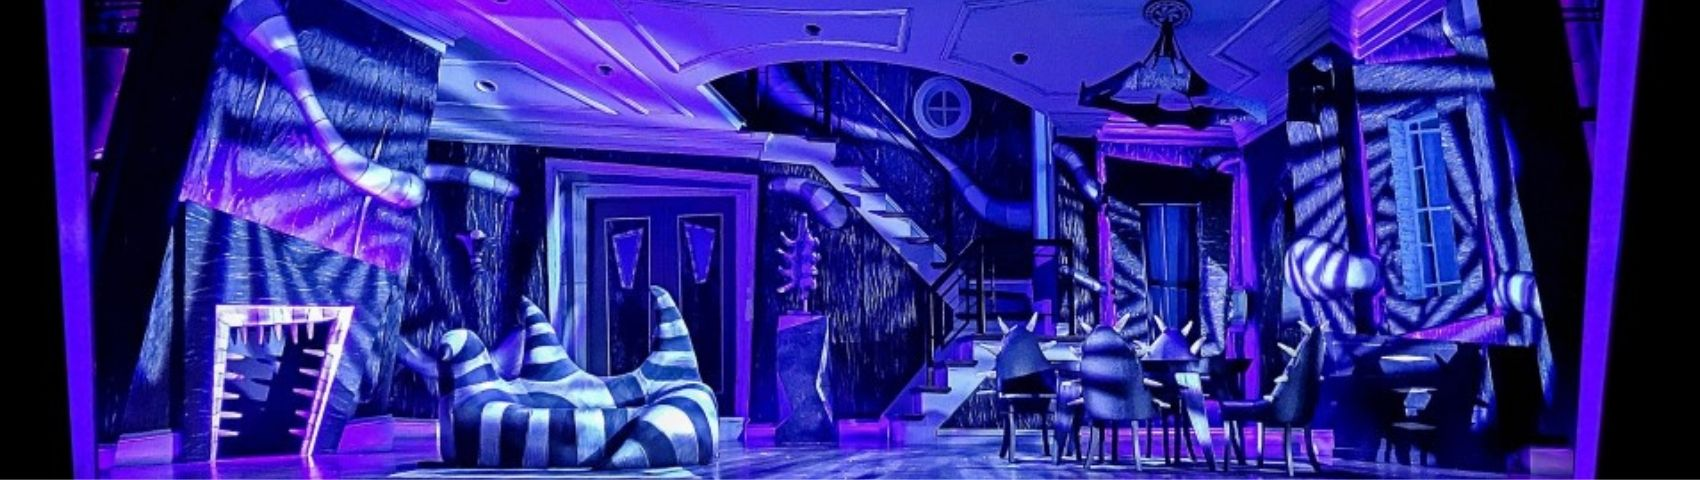 Beetlejuice-themed bar to open in Sydney